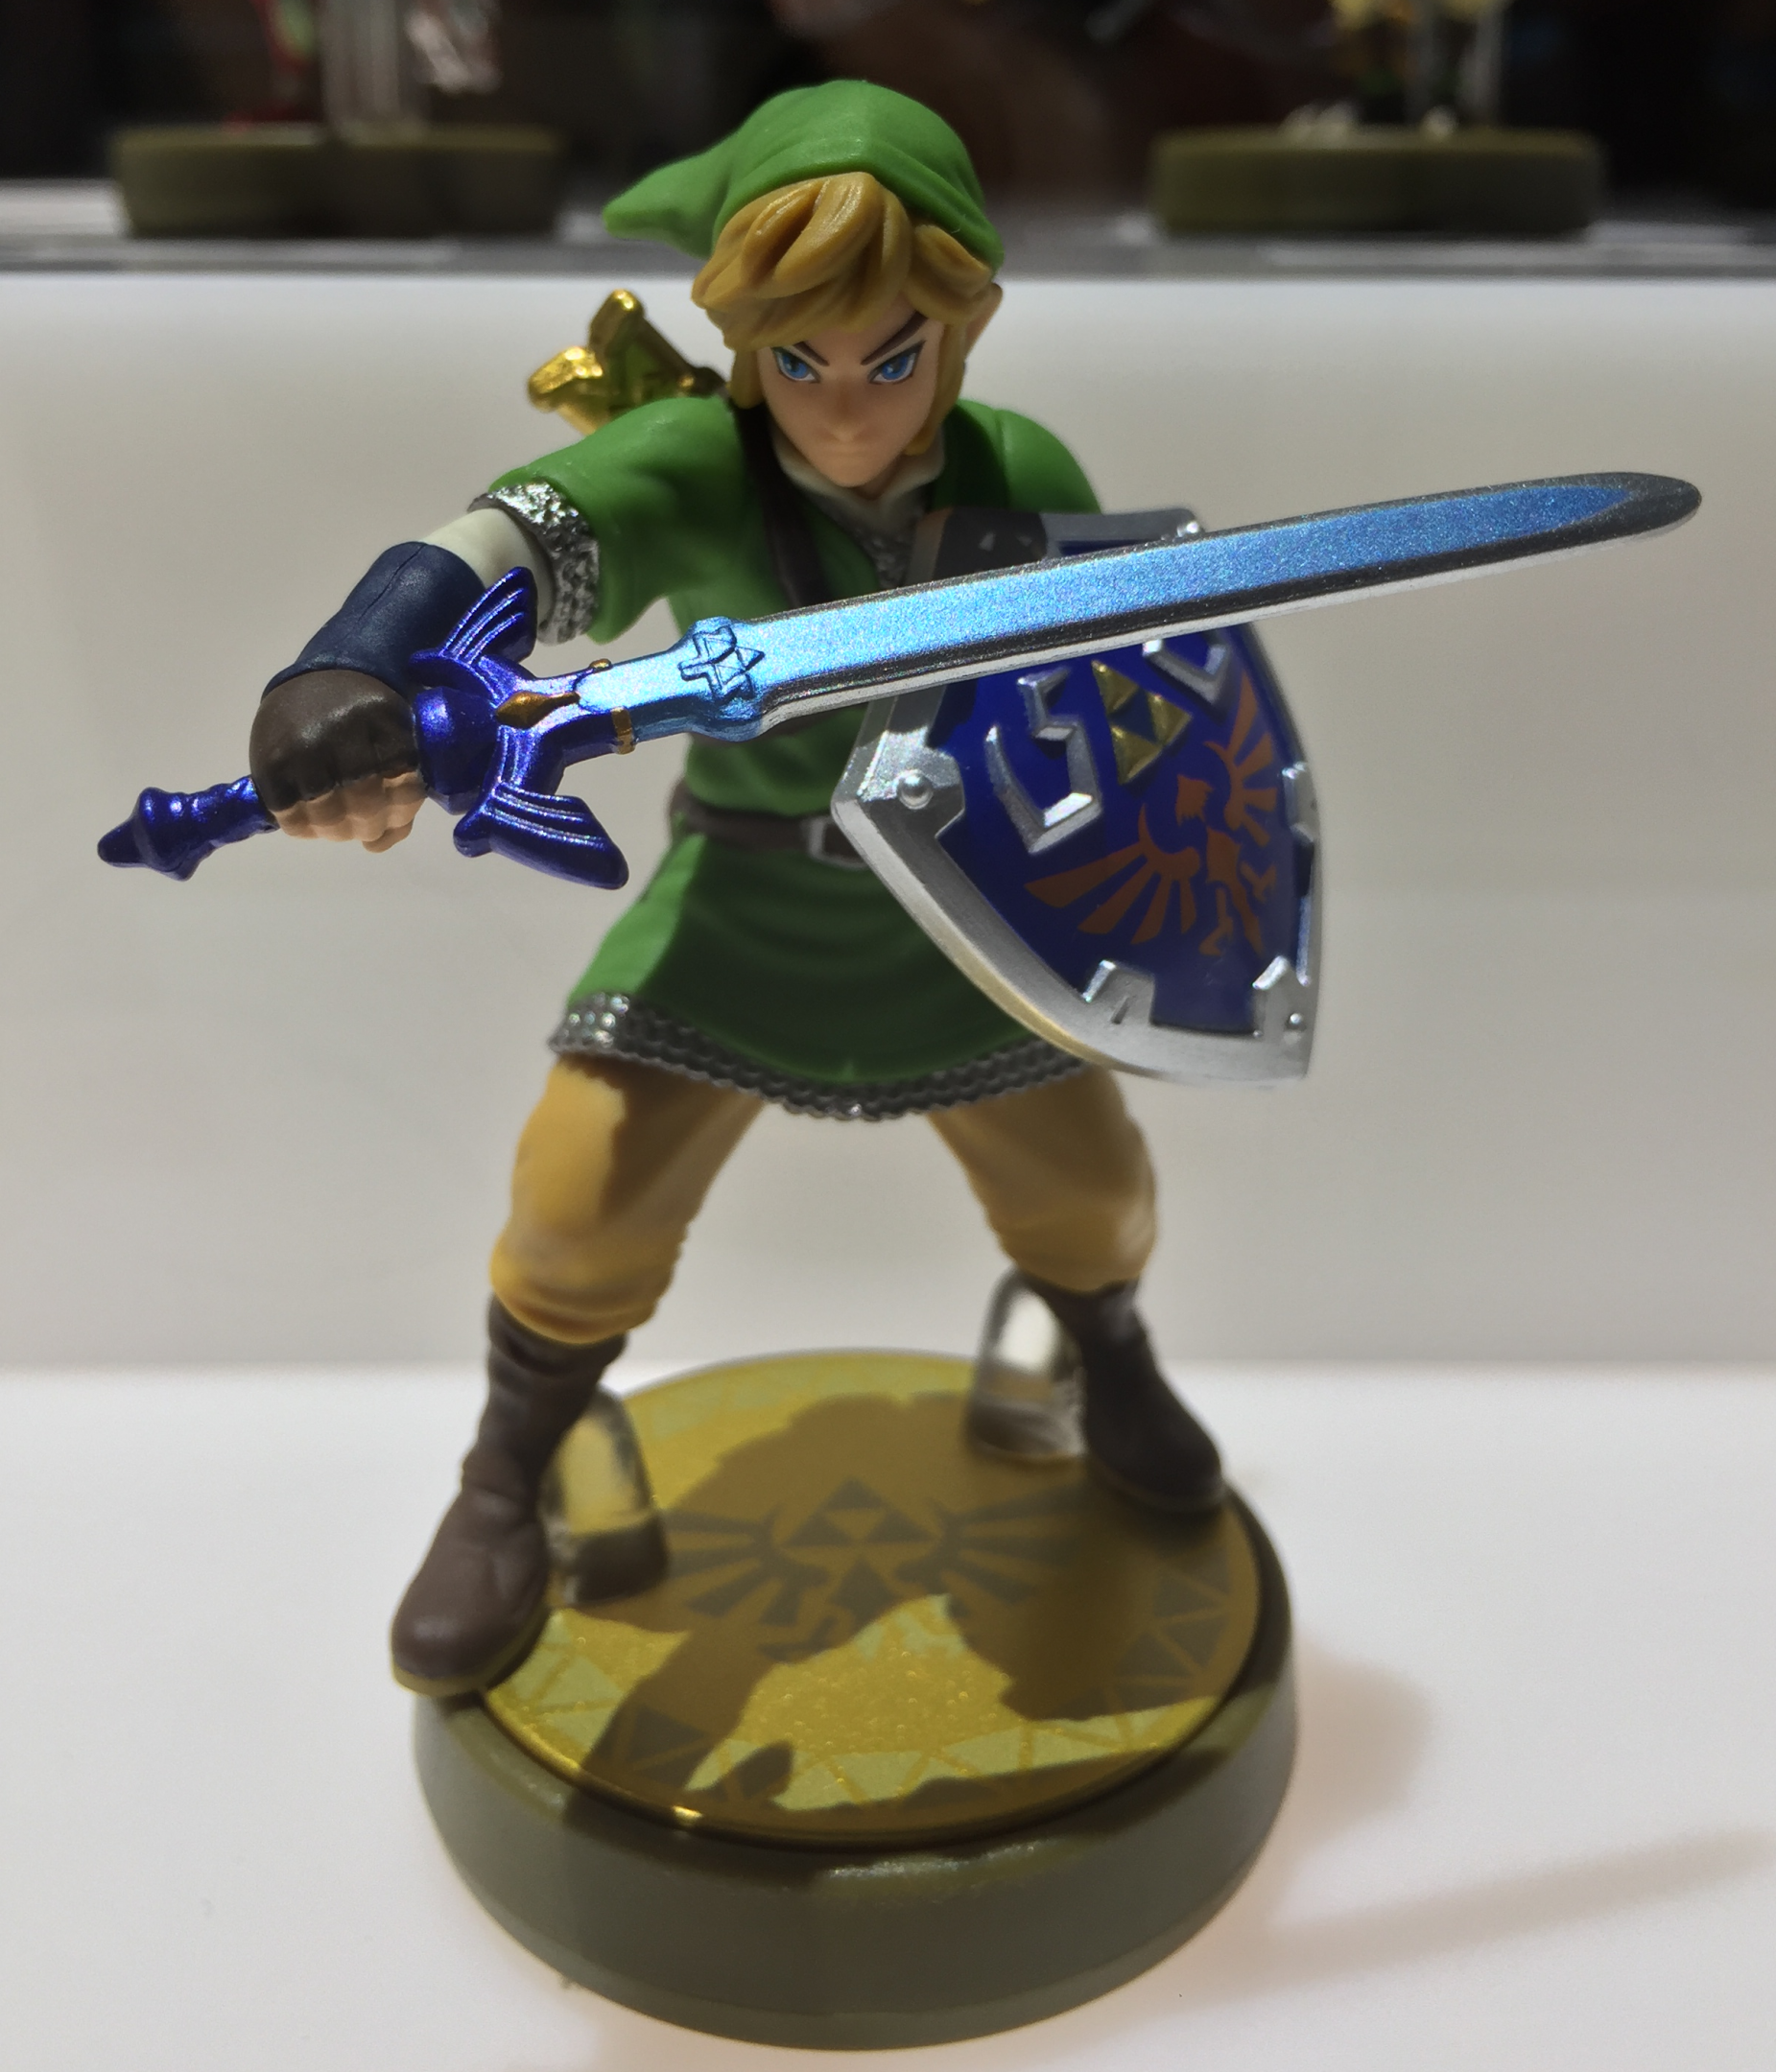 Catch a Breath with our E3 2017 amiibo Photo Gallery – Zelda Informer